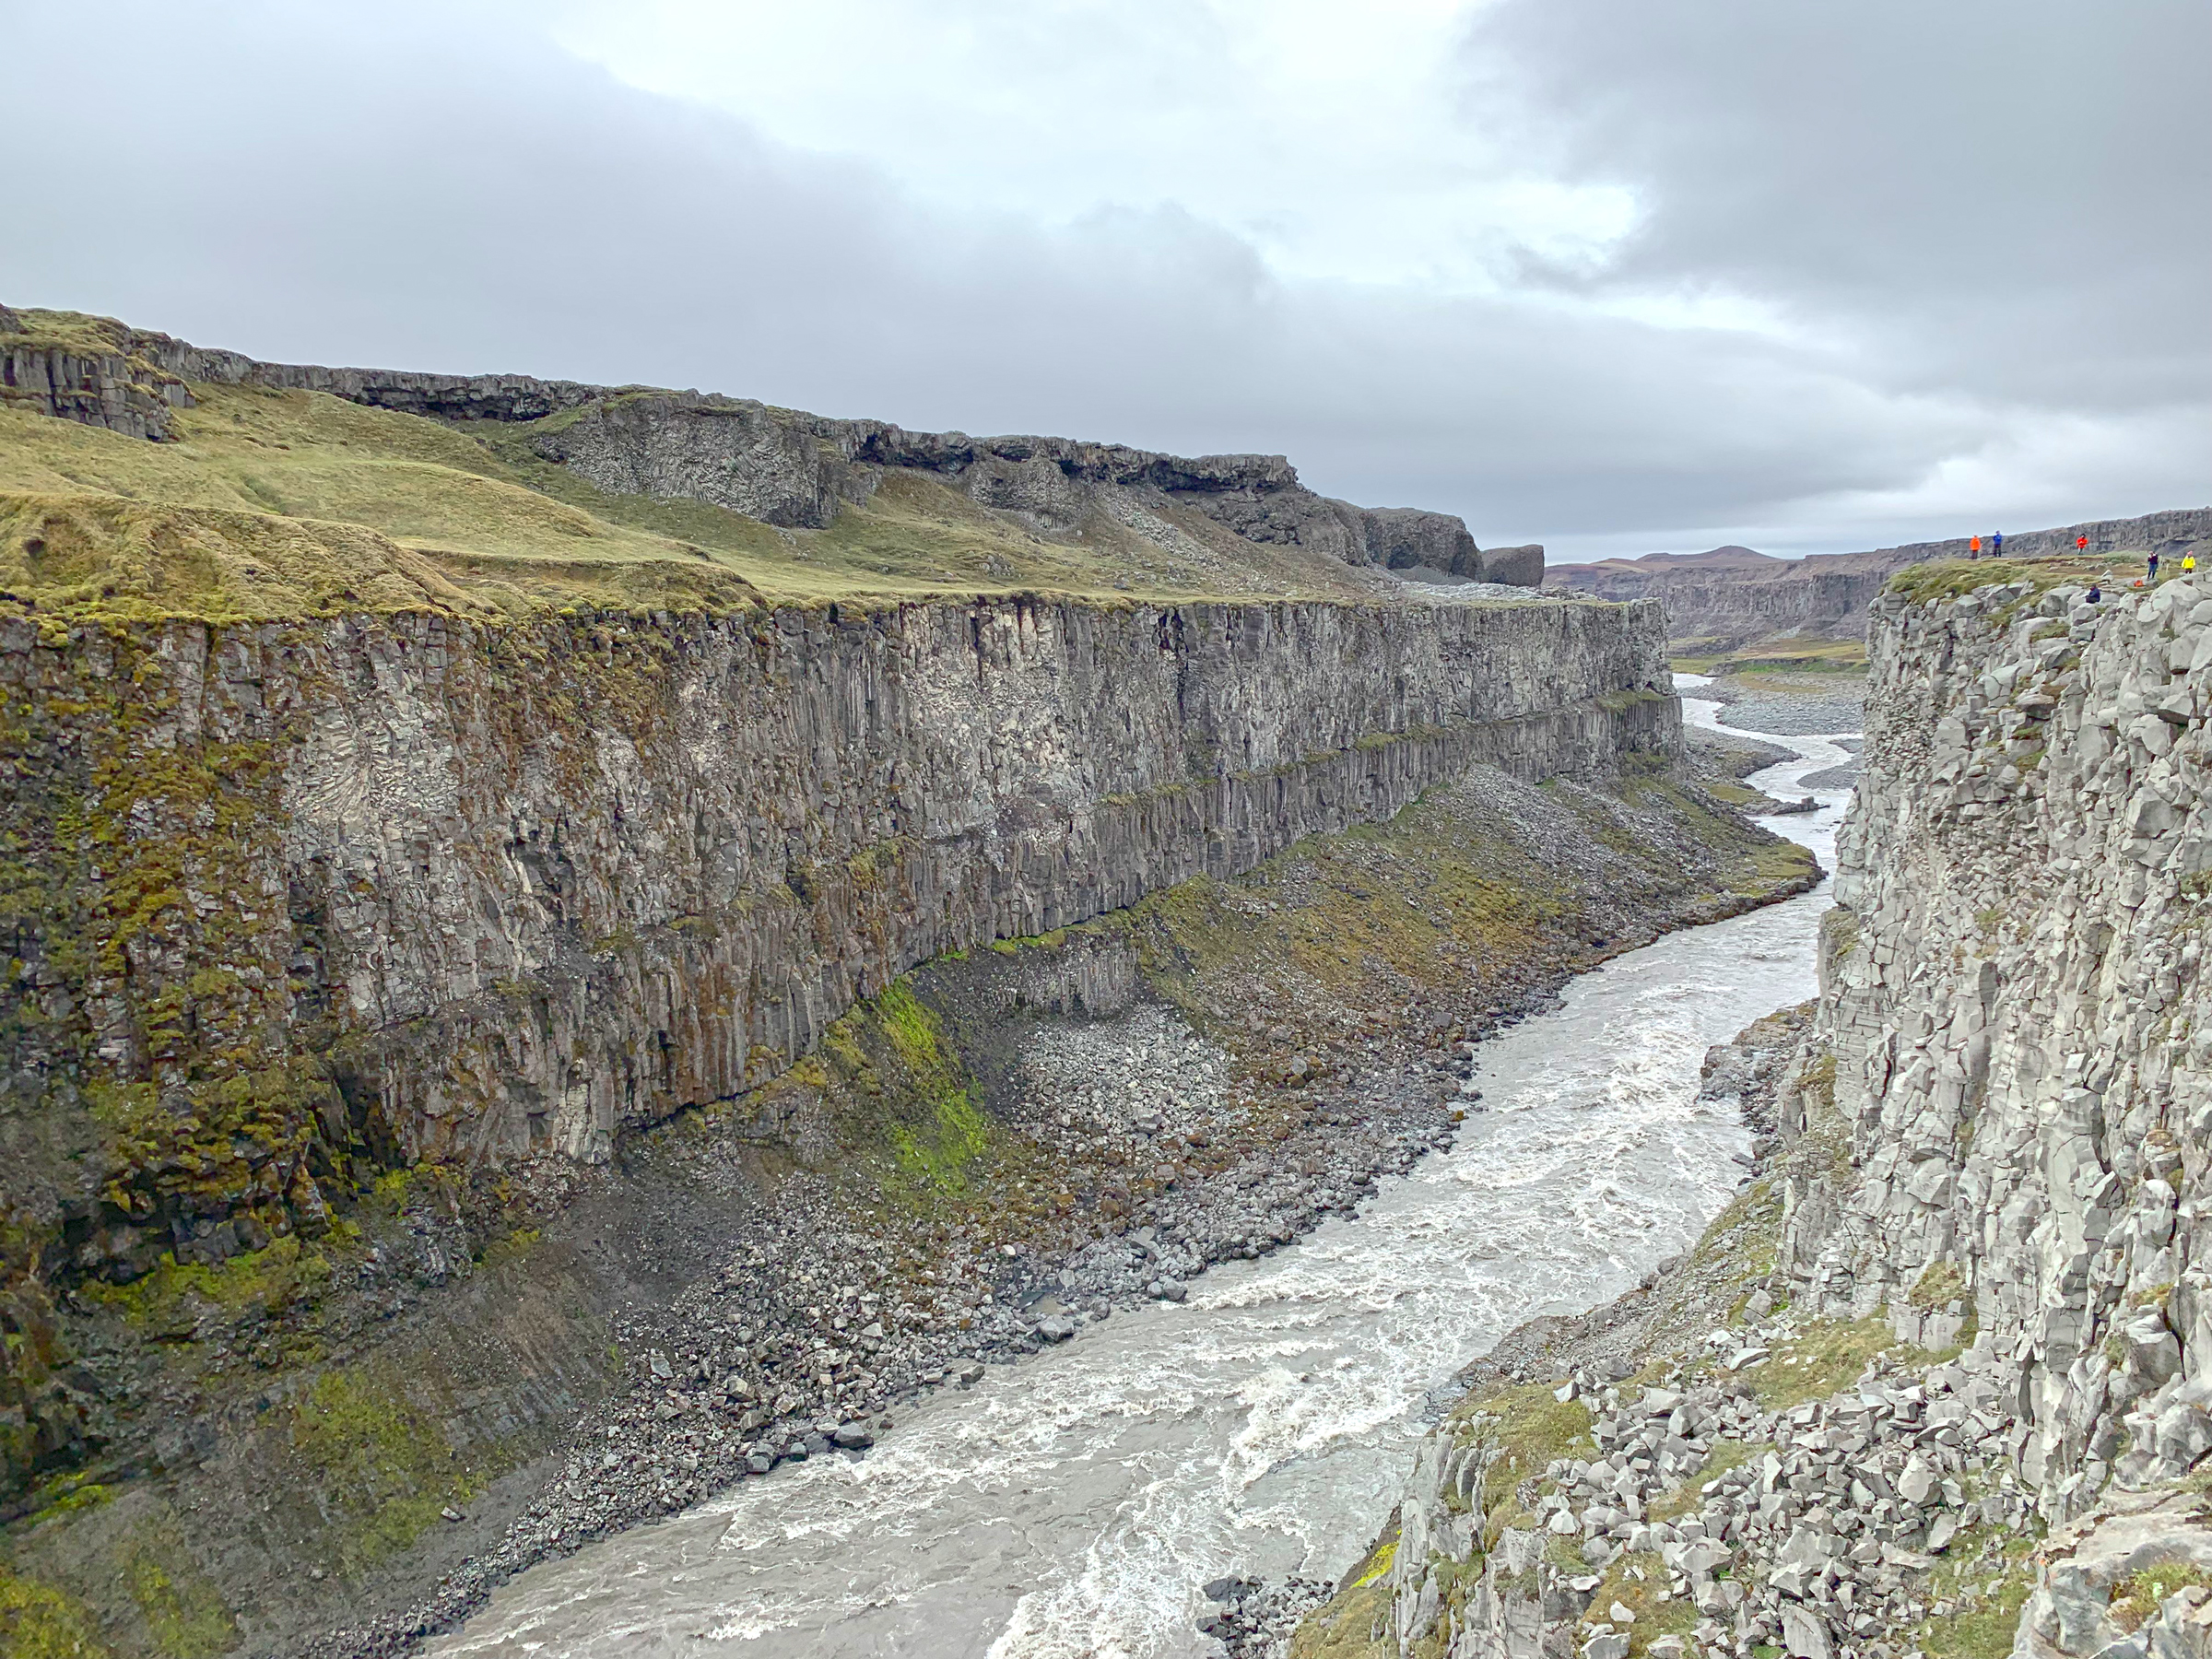 Jökulsa á Fjöllum River Gorge downstream from Dettifoss